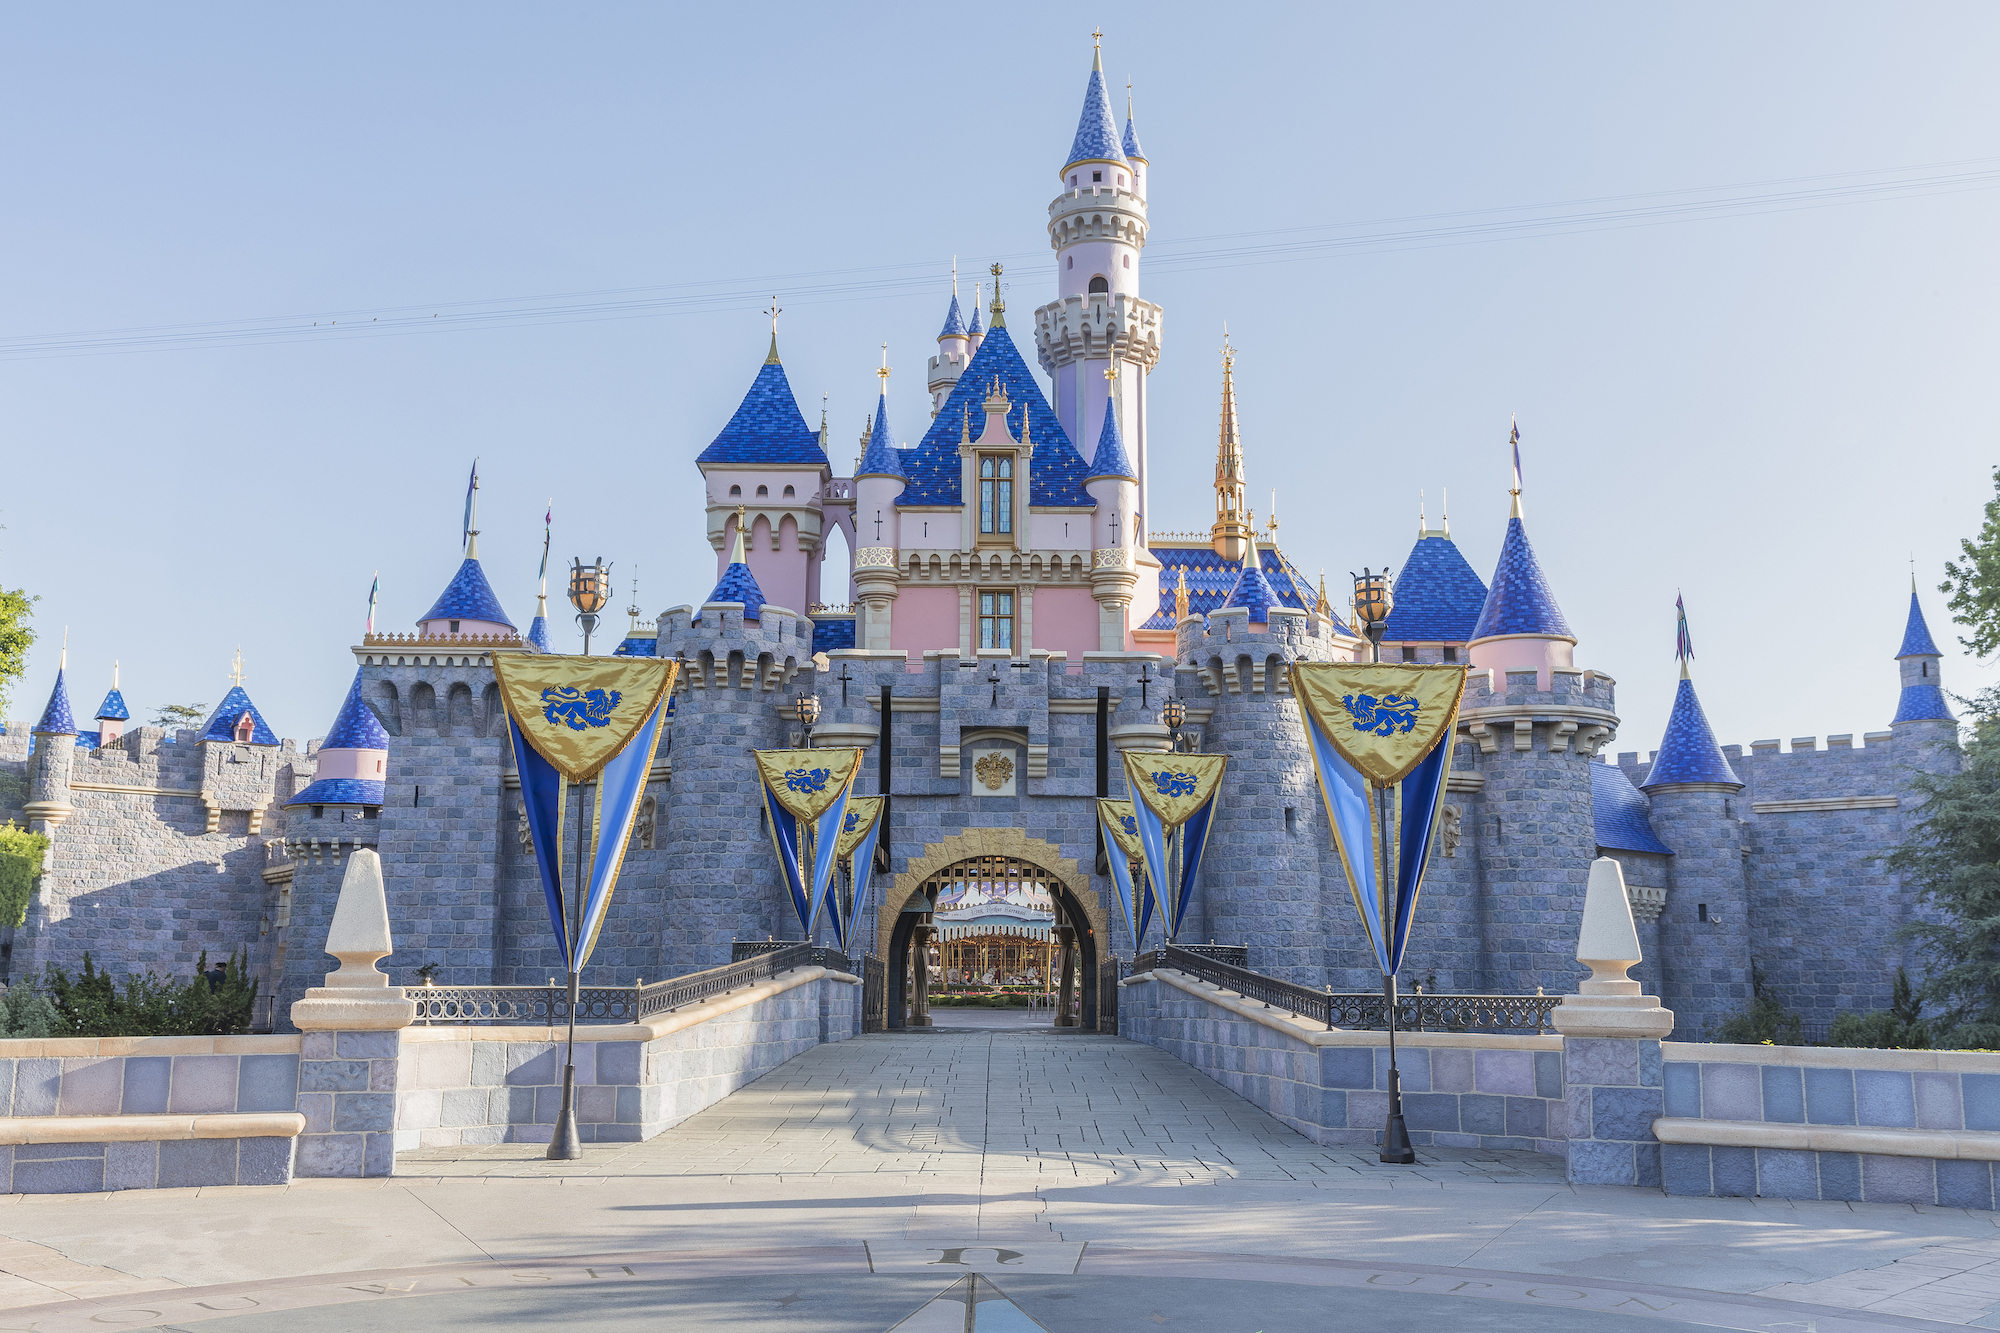 Sleeping Beauty Castle at Disneyland Park in Anaheim, Calif., is now open after a stunning refurbishment, enhanced with bold new colors and pixie dust, among other enhancements. (Christian Thompson/Disneyland Resort)